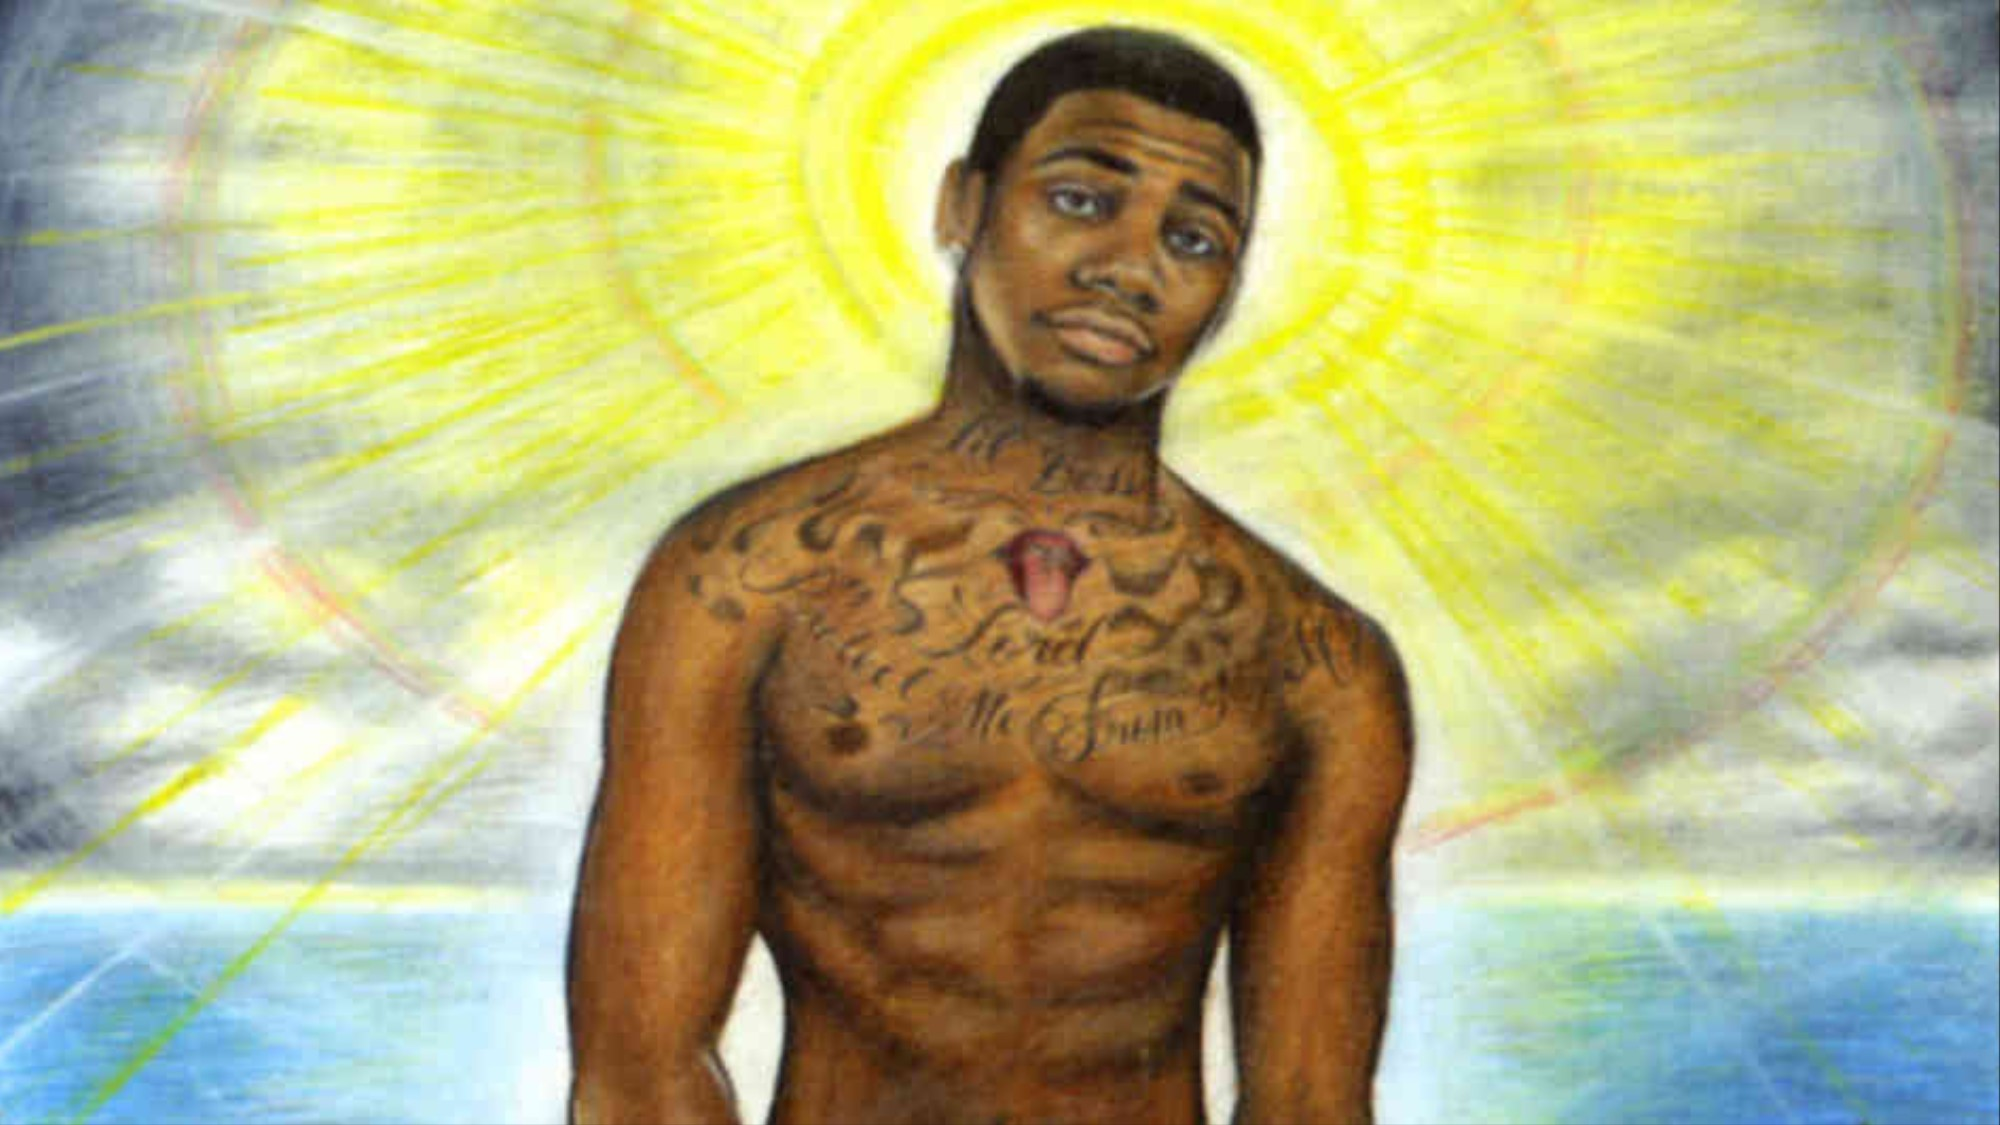 Why I'm Not Going to Listen to Lil B's New Mixtape - VICE